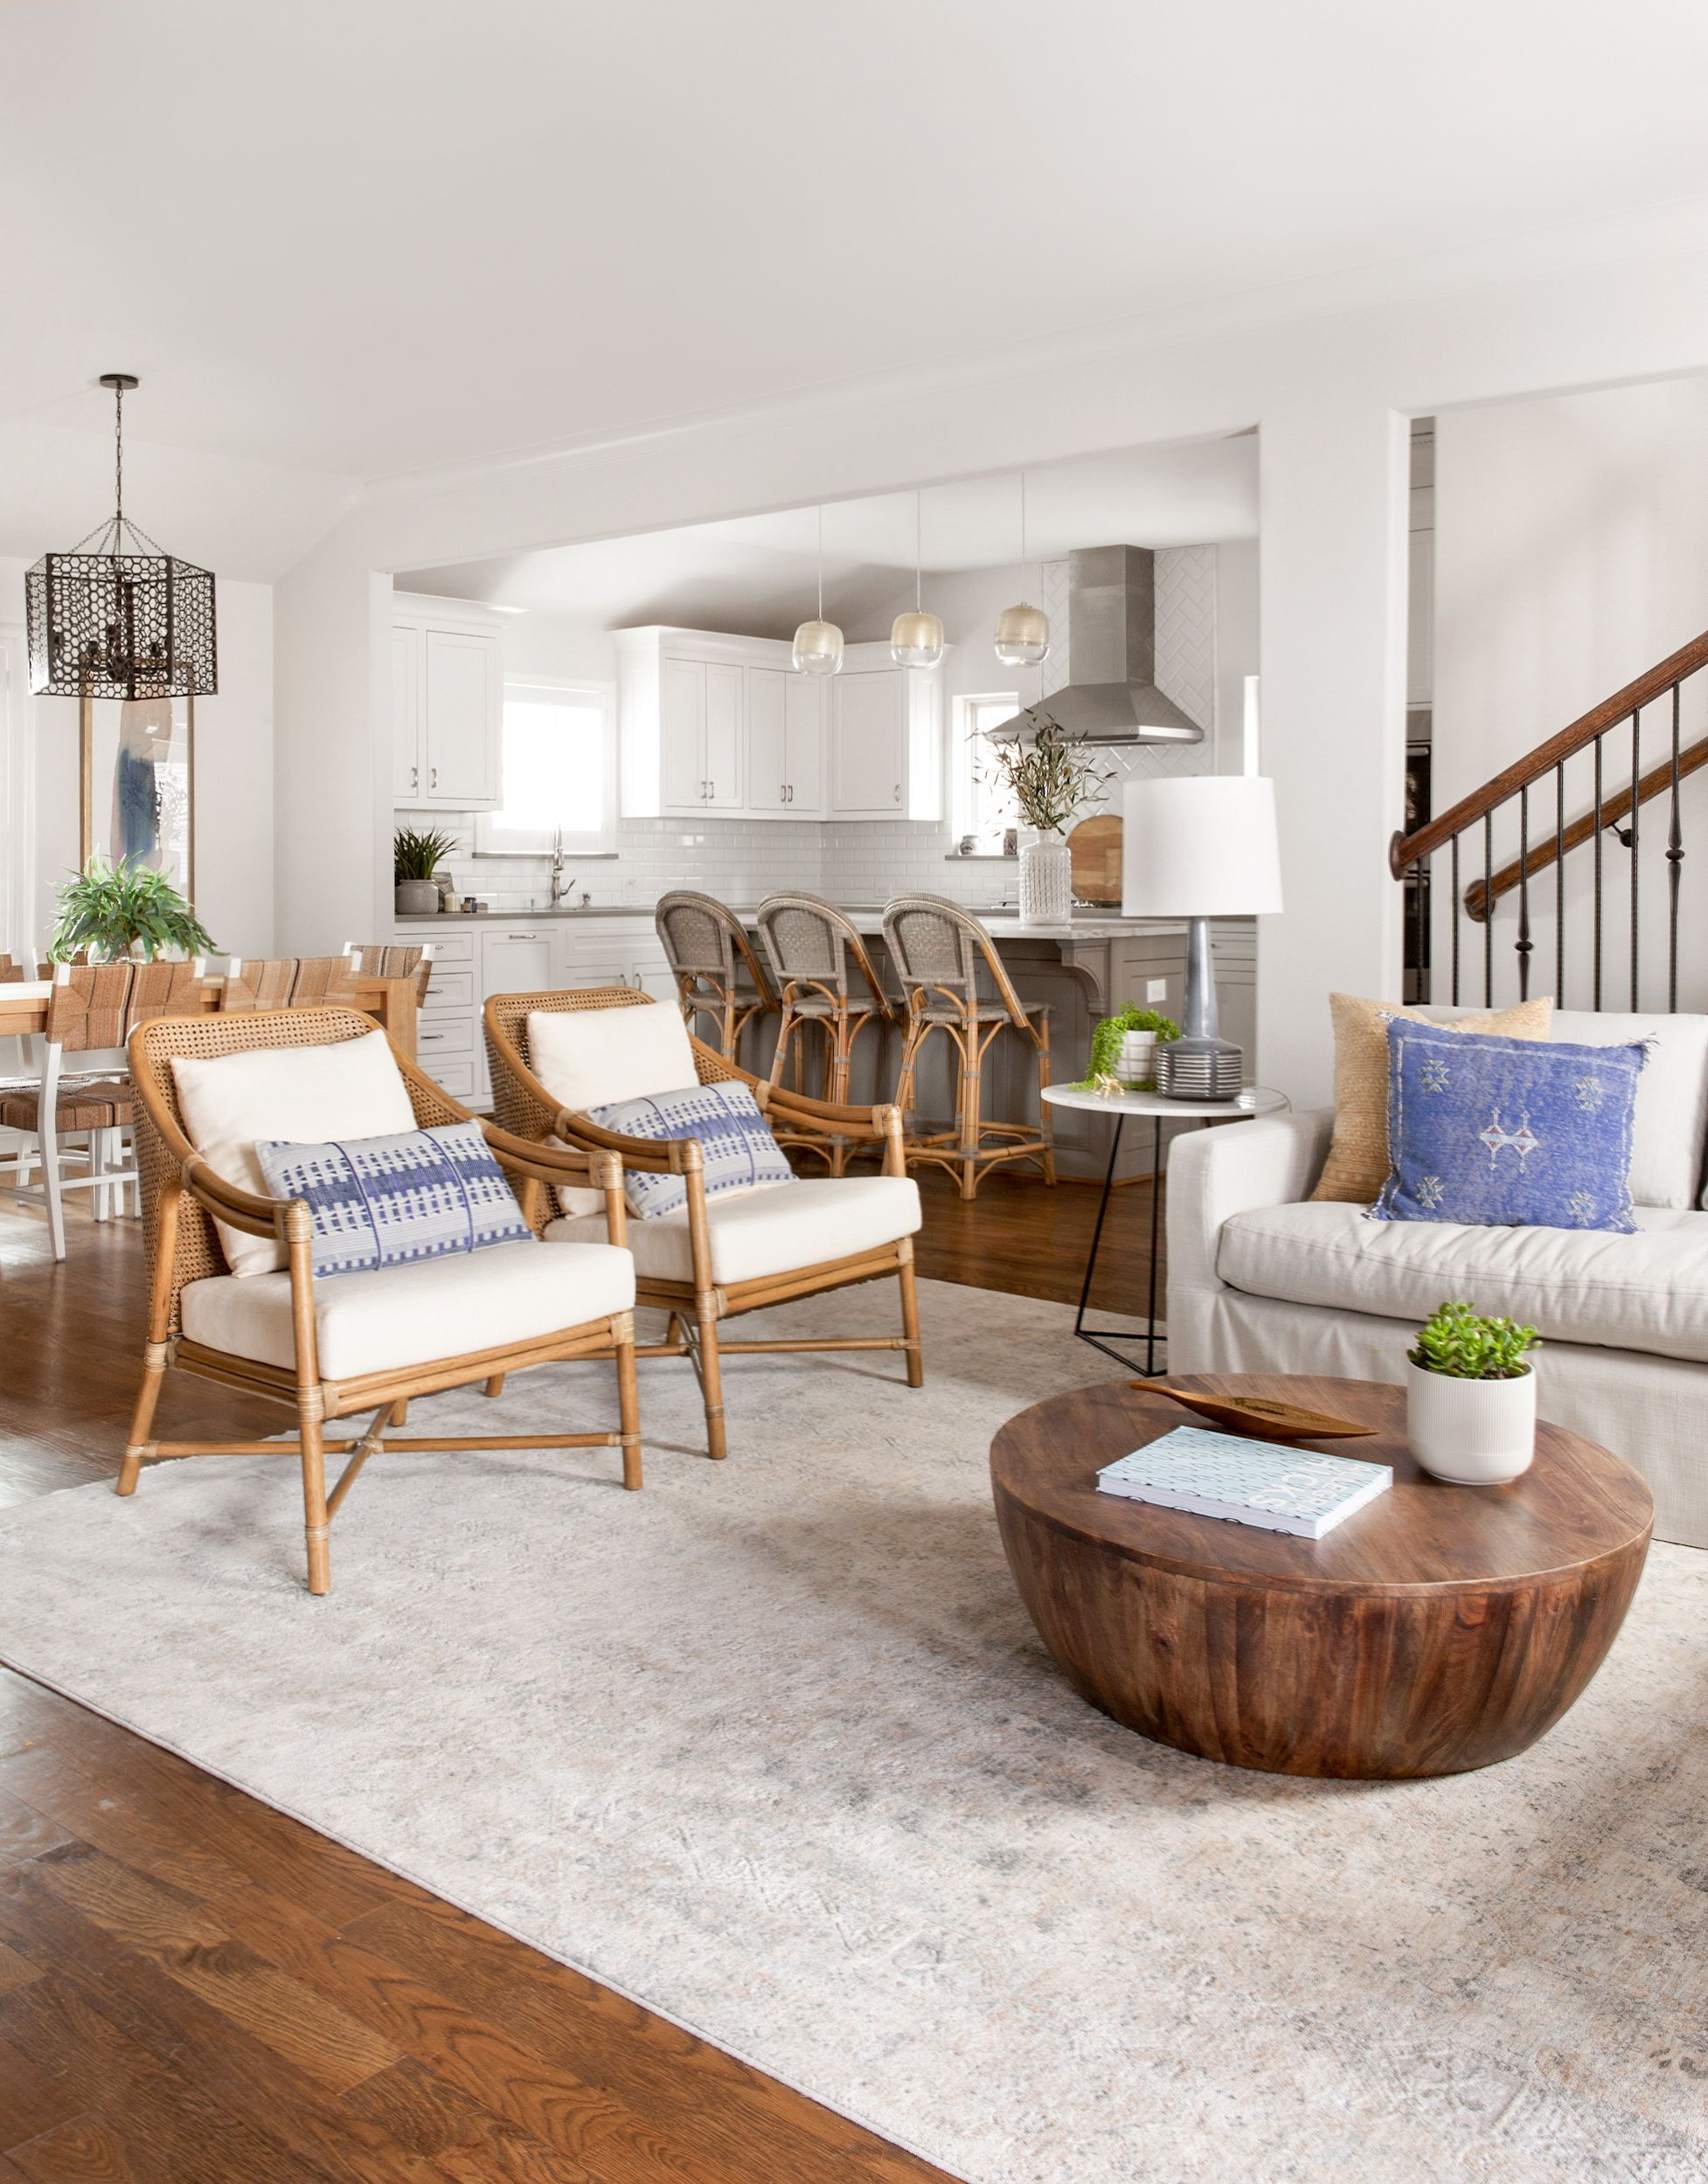 10 Amazing Open Concept Living Room With Sectional